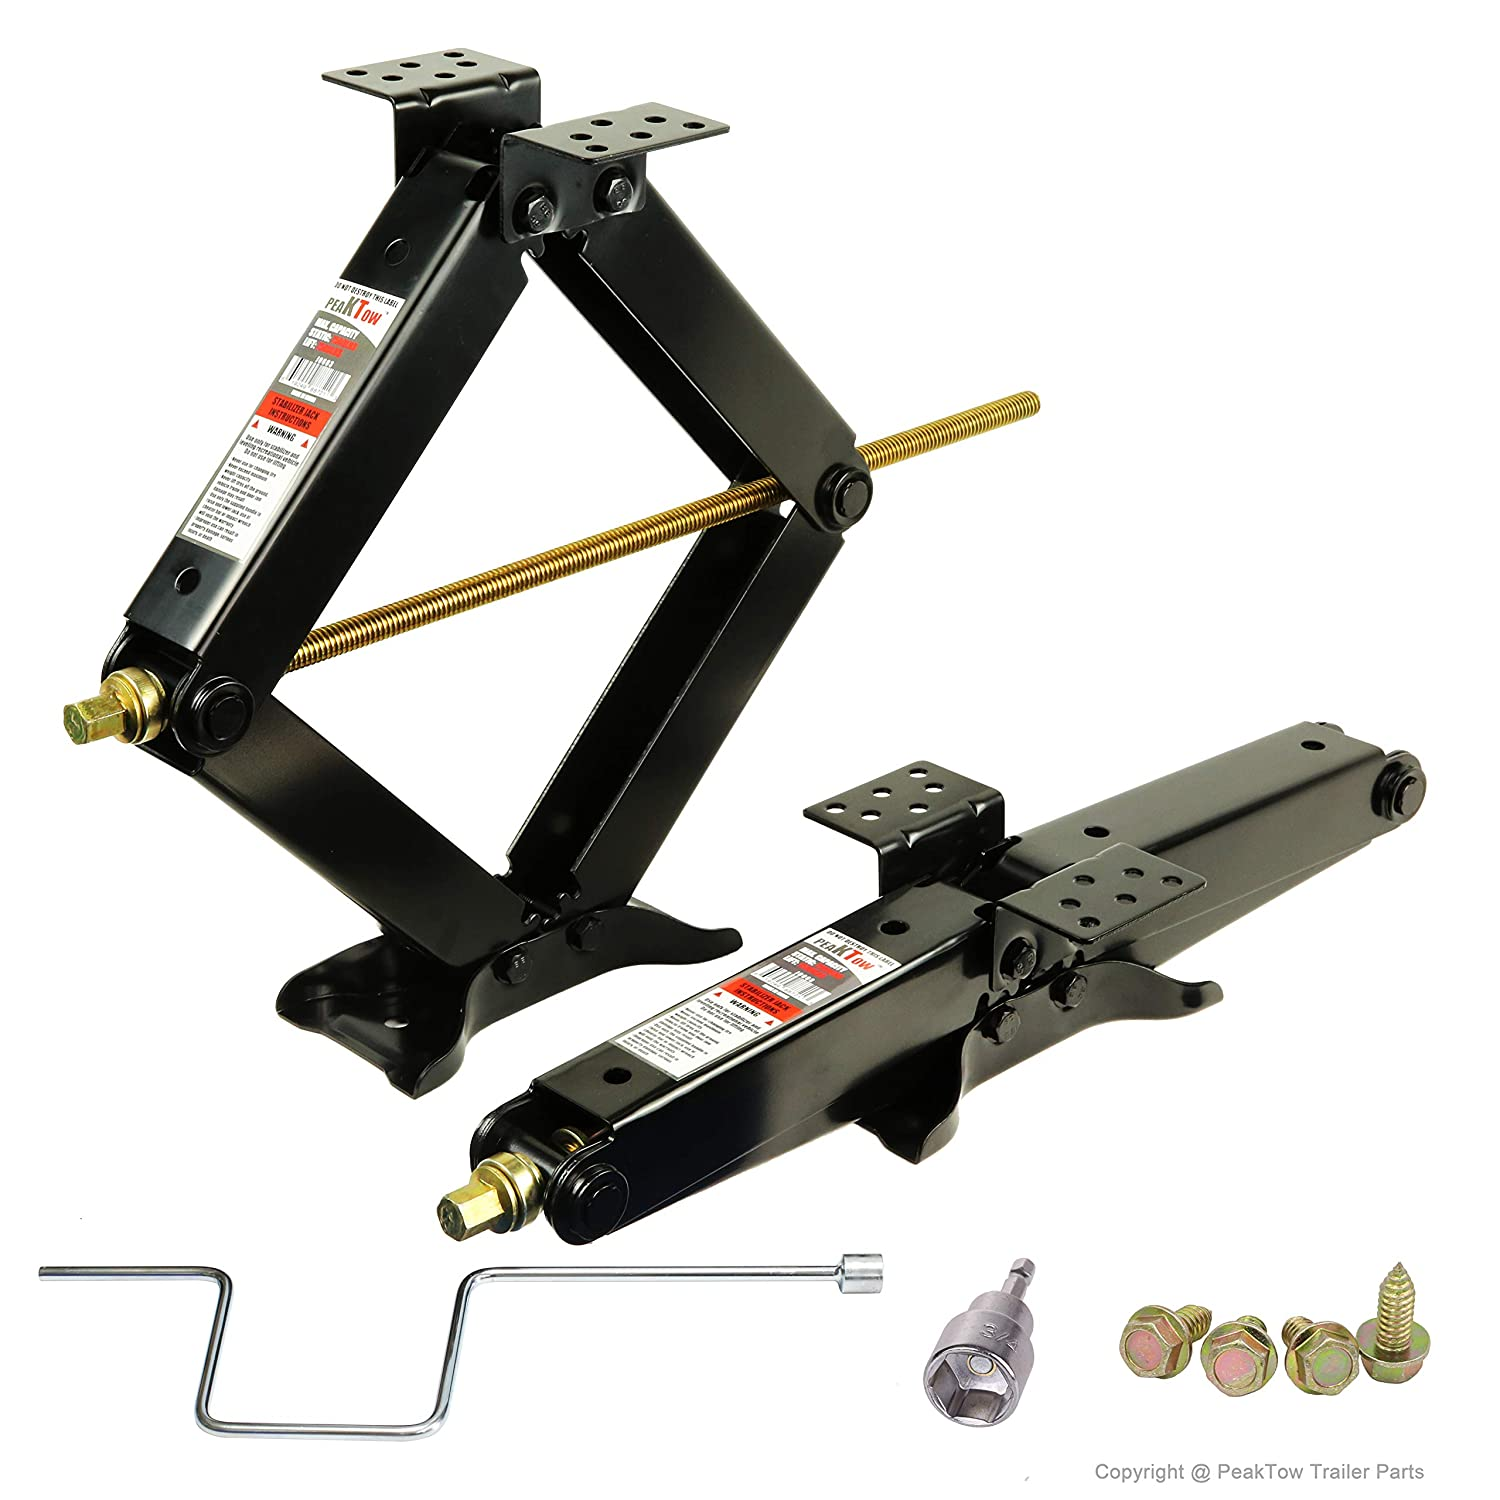 PEAKTOW PTJ0603 Including Handle & Power Drill Socket & Hardware 7500lb. 24 Inches RV Trailer Stabilizer Leveling Scissor Jacks Pack of 2 Autto Web Service Inc.